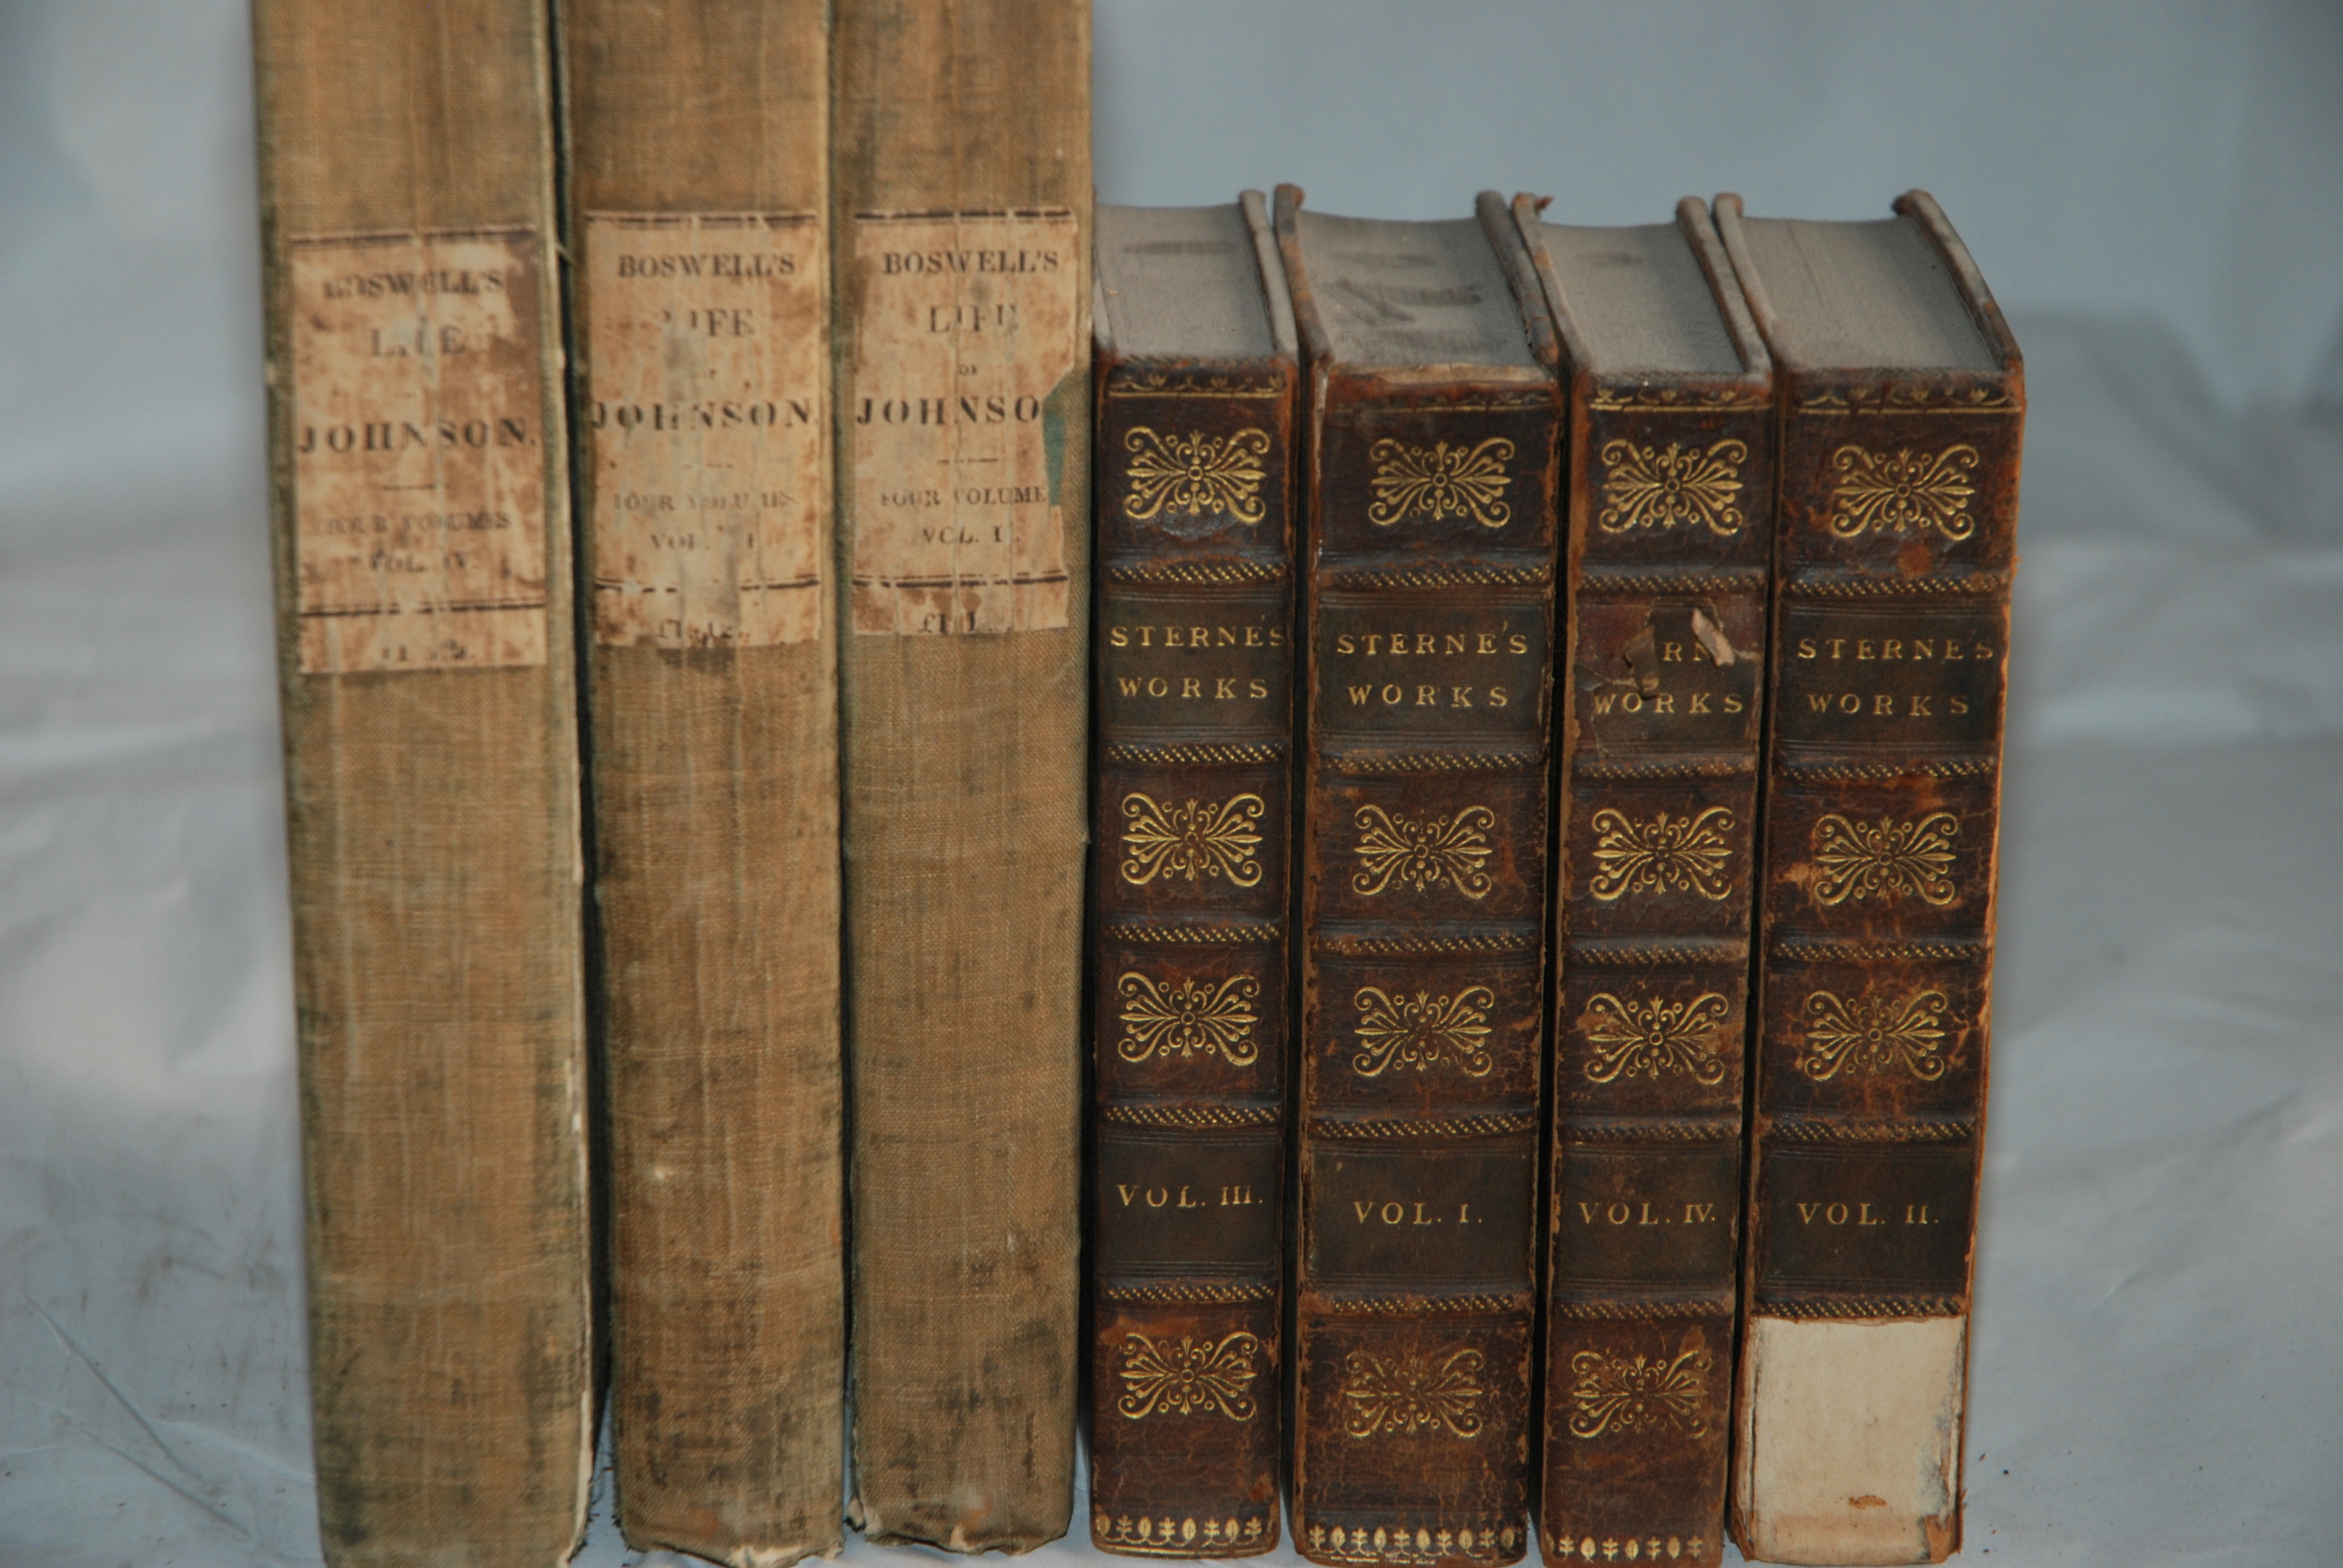 BOSWELLS LIFE OF JOHNSON 3 vols, London, 1824, The works of Henry Fielding, 9 vols, Laurence Sterna, - Image 3 of 3